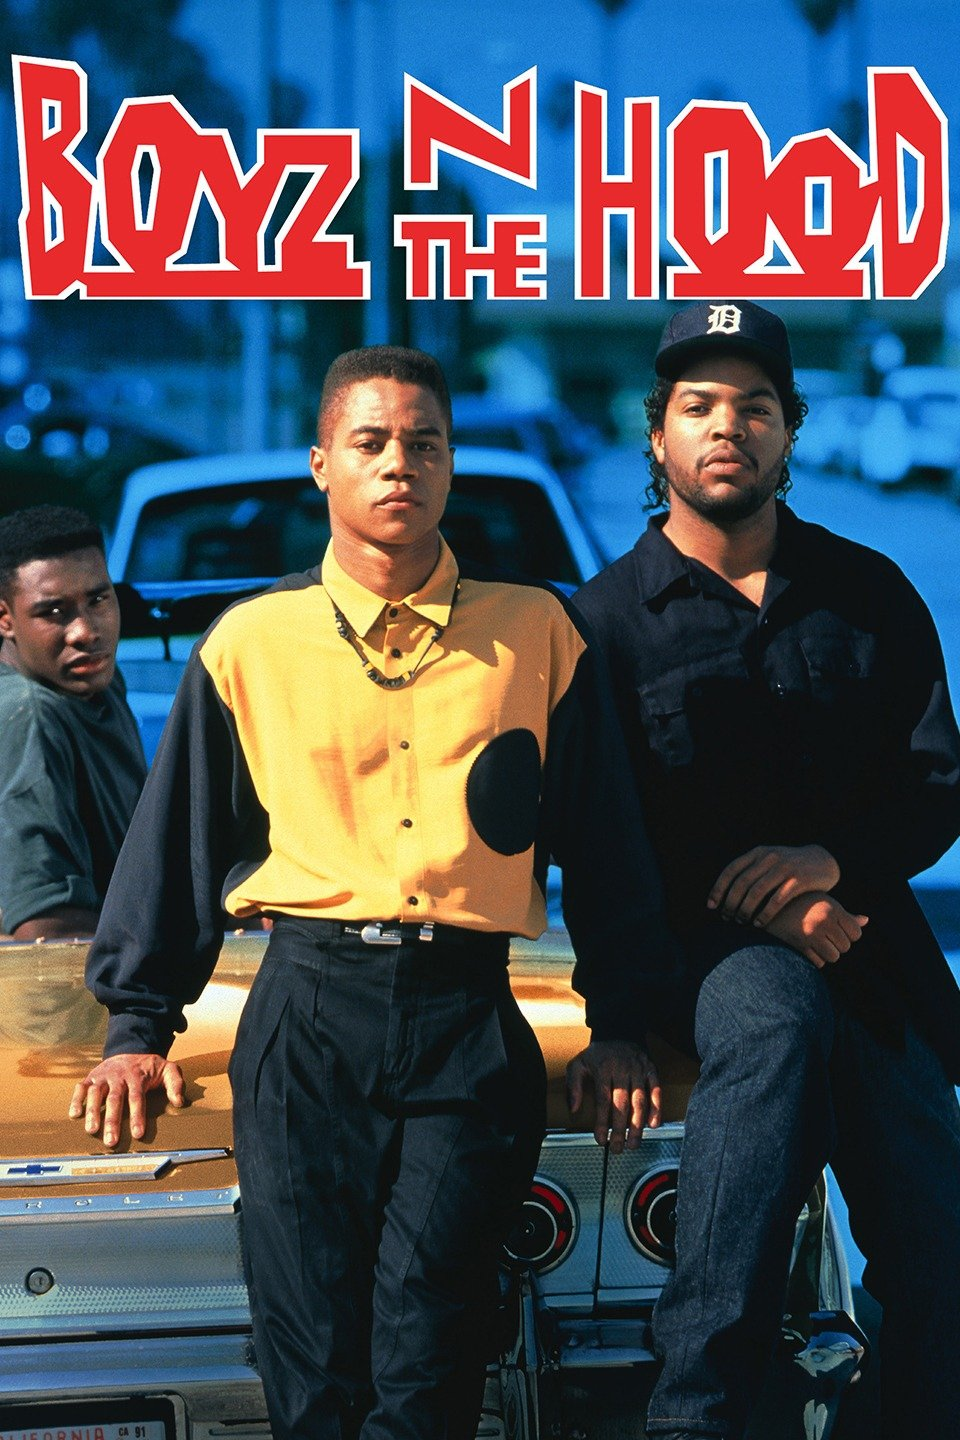 Boyz n the Hood Movie Poster.jpg